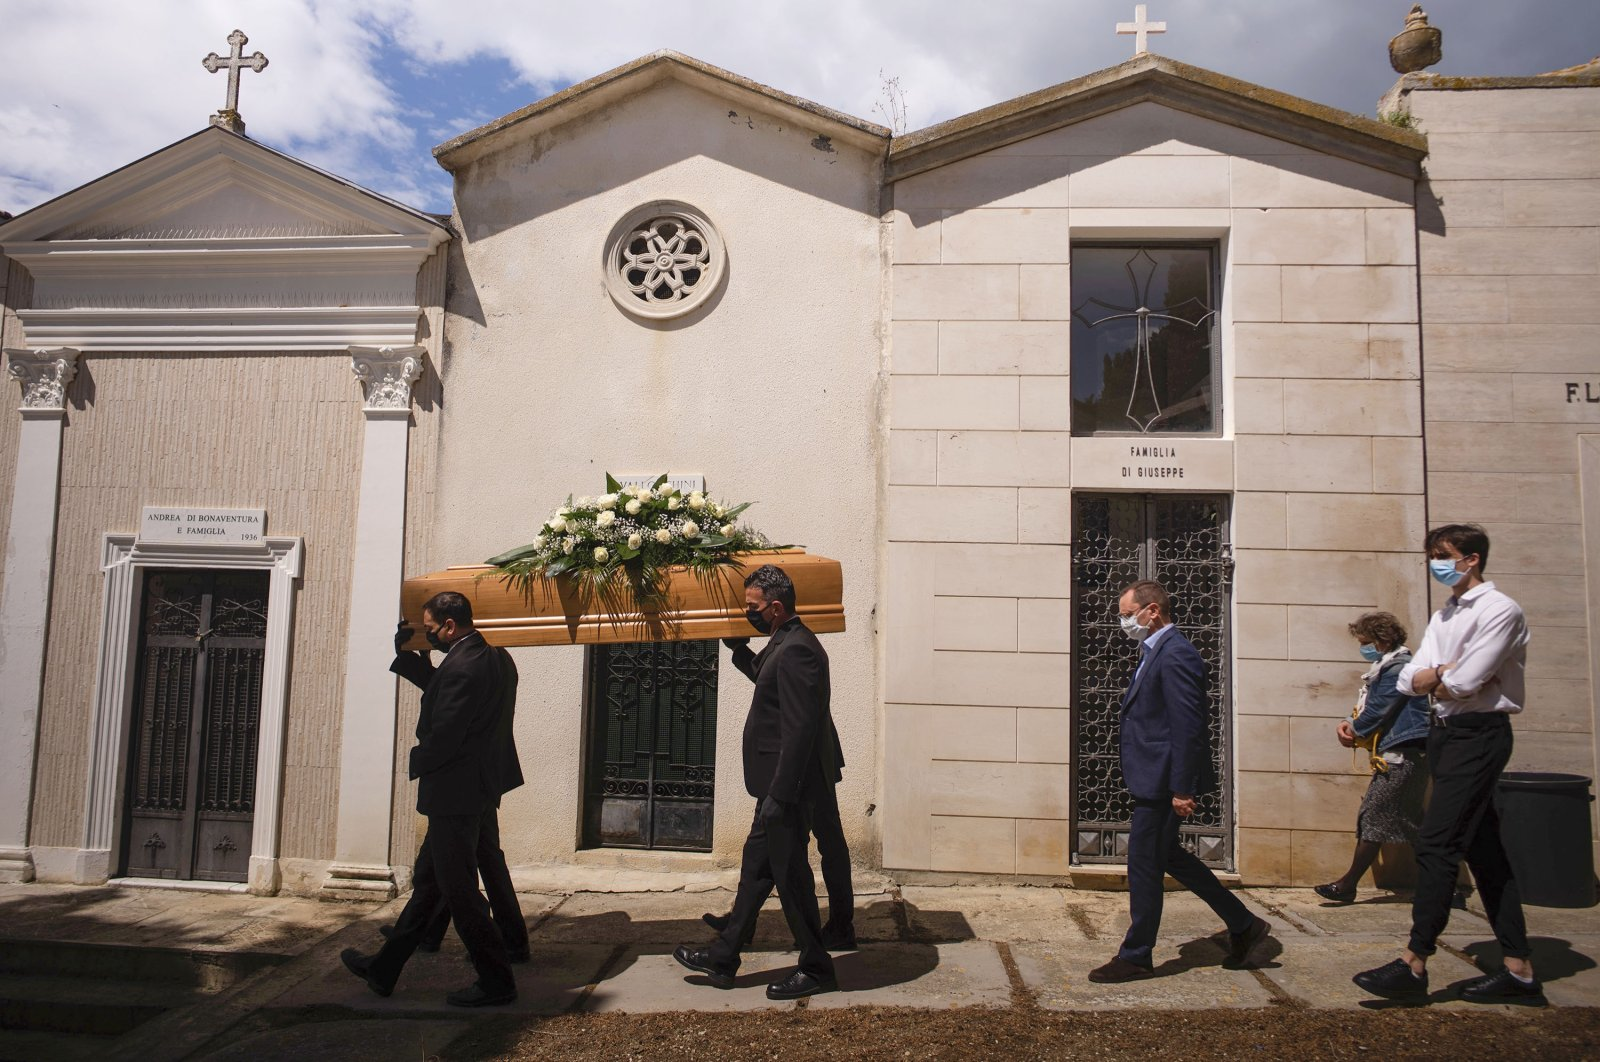 The casket containing the body of Annunziata Ginoble, mother of Sabatino Di Girolamo, mayor of Roseto degli Abruzzi (3rd from R), with his sister Marisa Di Felice (2nd from R) and his son Francesco (R) is taken to her burial site inside the small cemetery of Montepagano, central Italy, at the end of her funeral, May 12, 2020. (AP Photo)